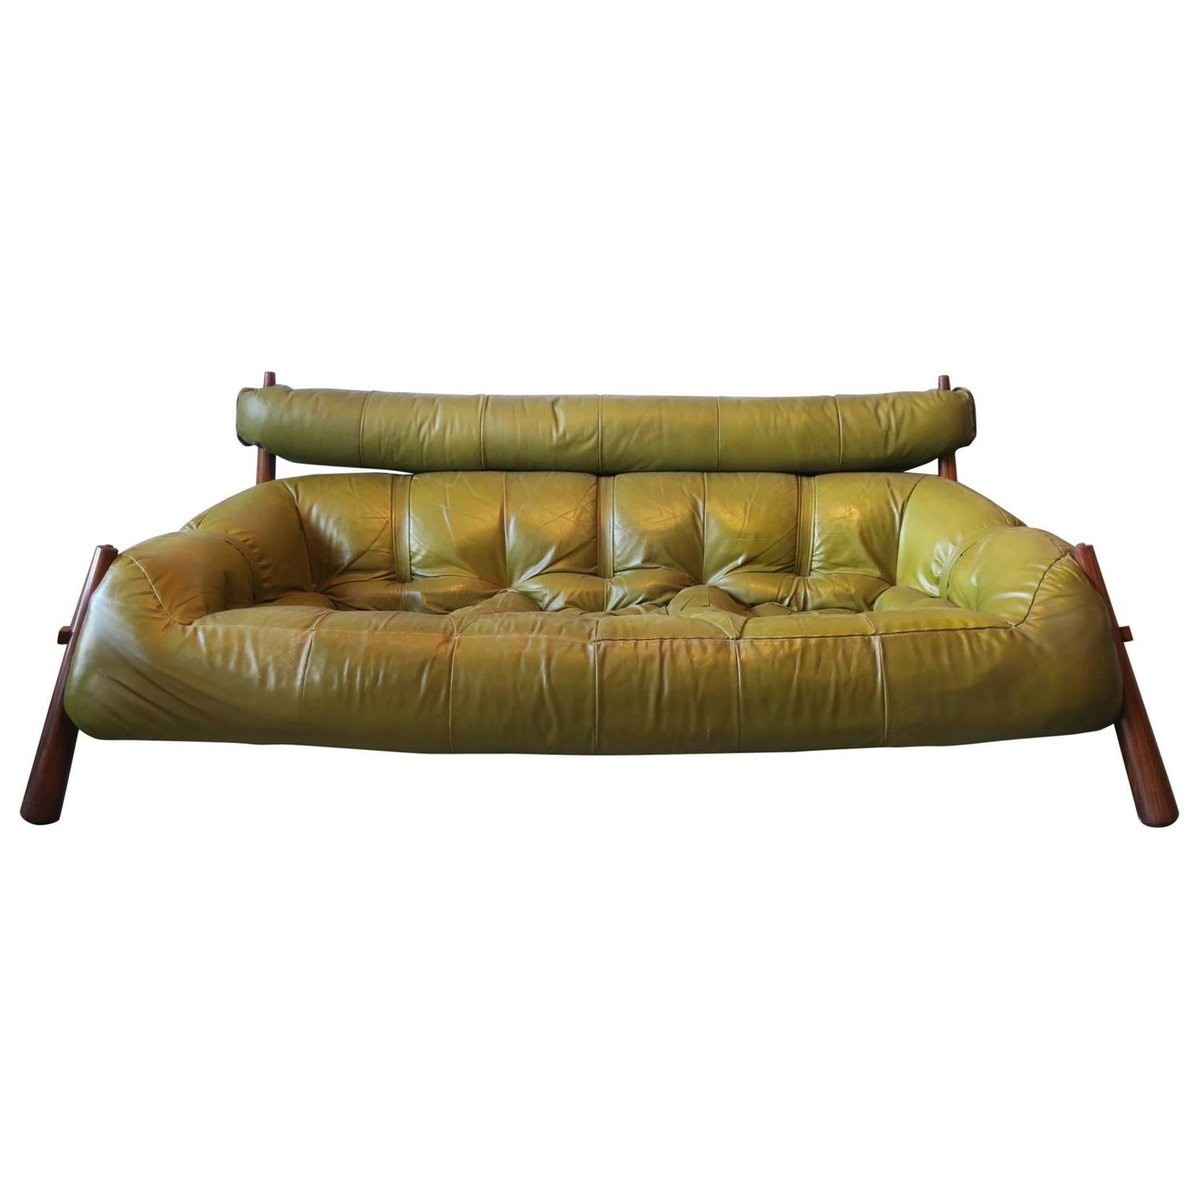 Brazilian 3 Seater Rosewood Leather Sofa From Percival Lafer 1974